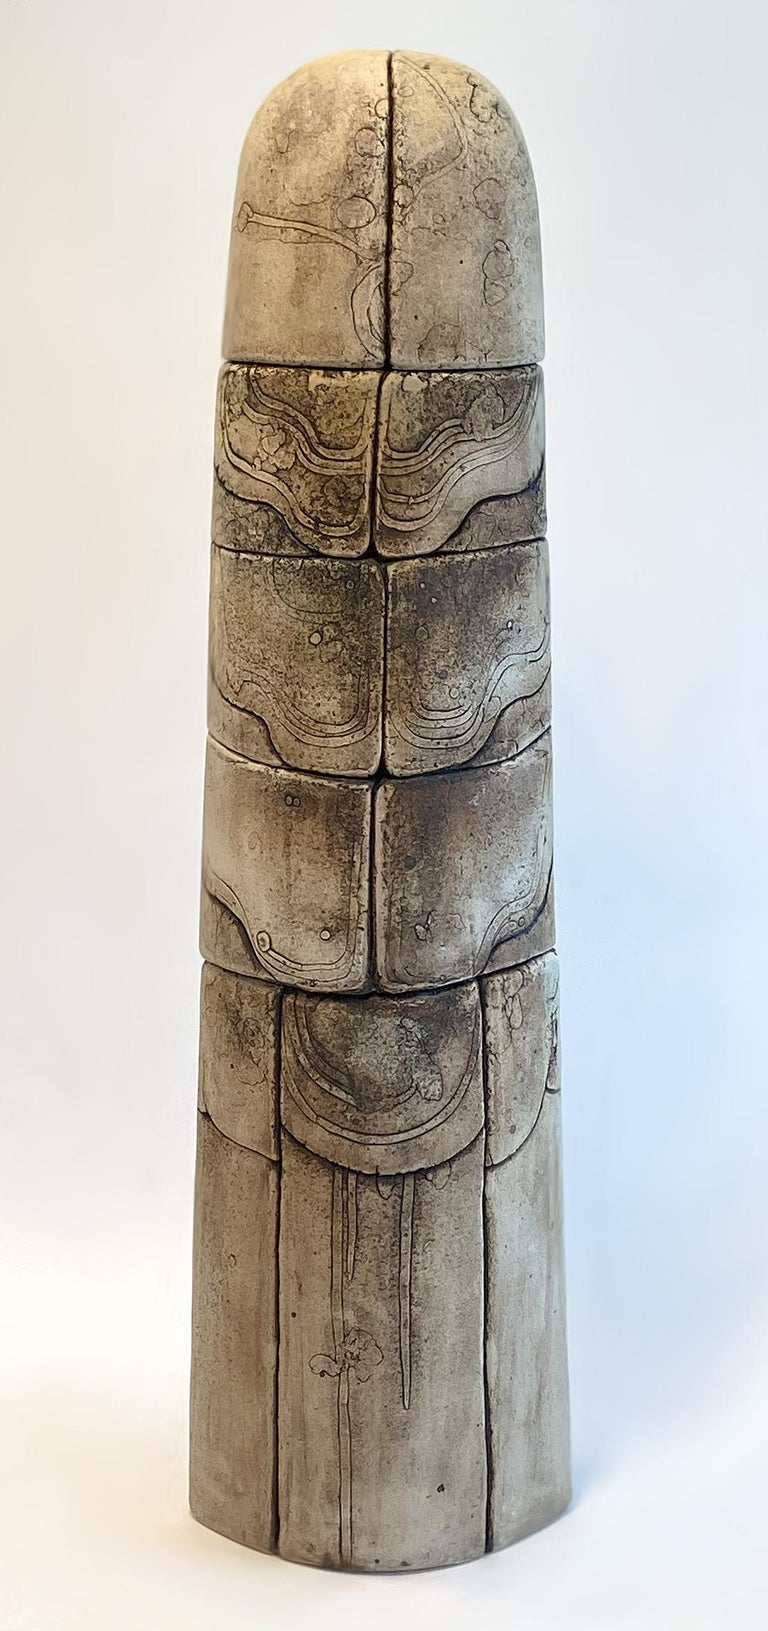 Modern Monumental Ceramic Pottery Sculpture by Antoine de Vinck, France, 1970s For Sale